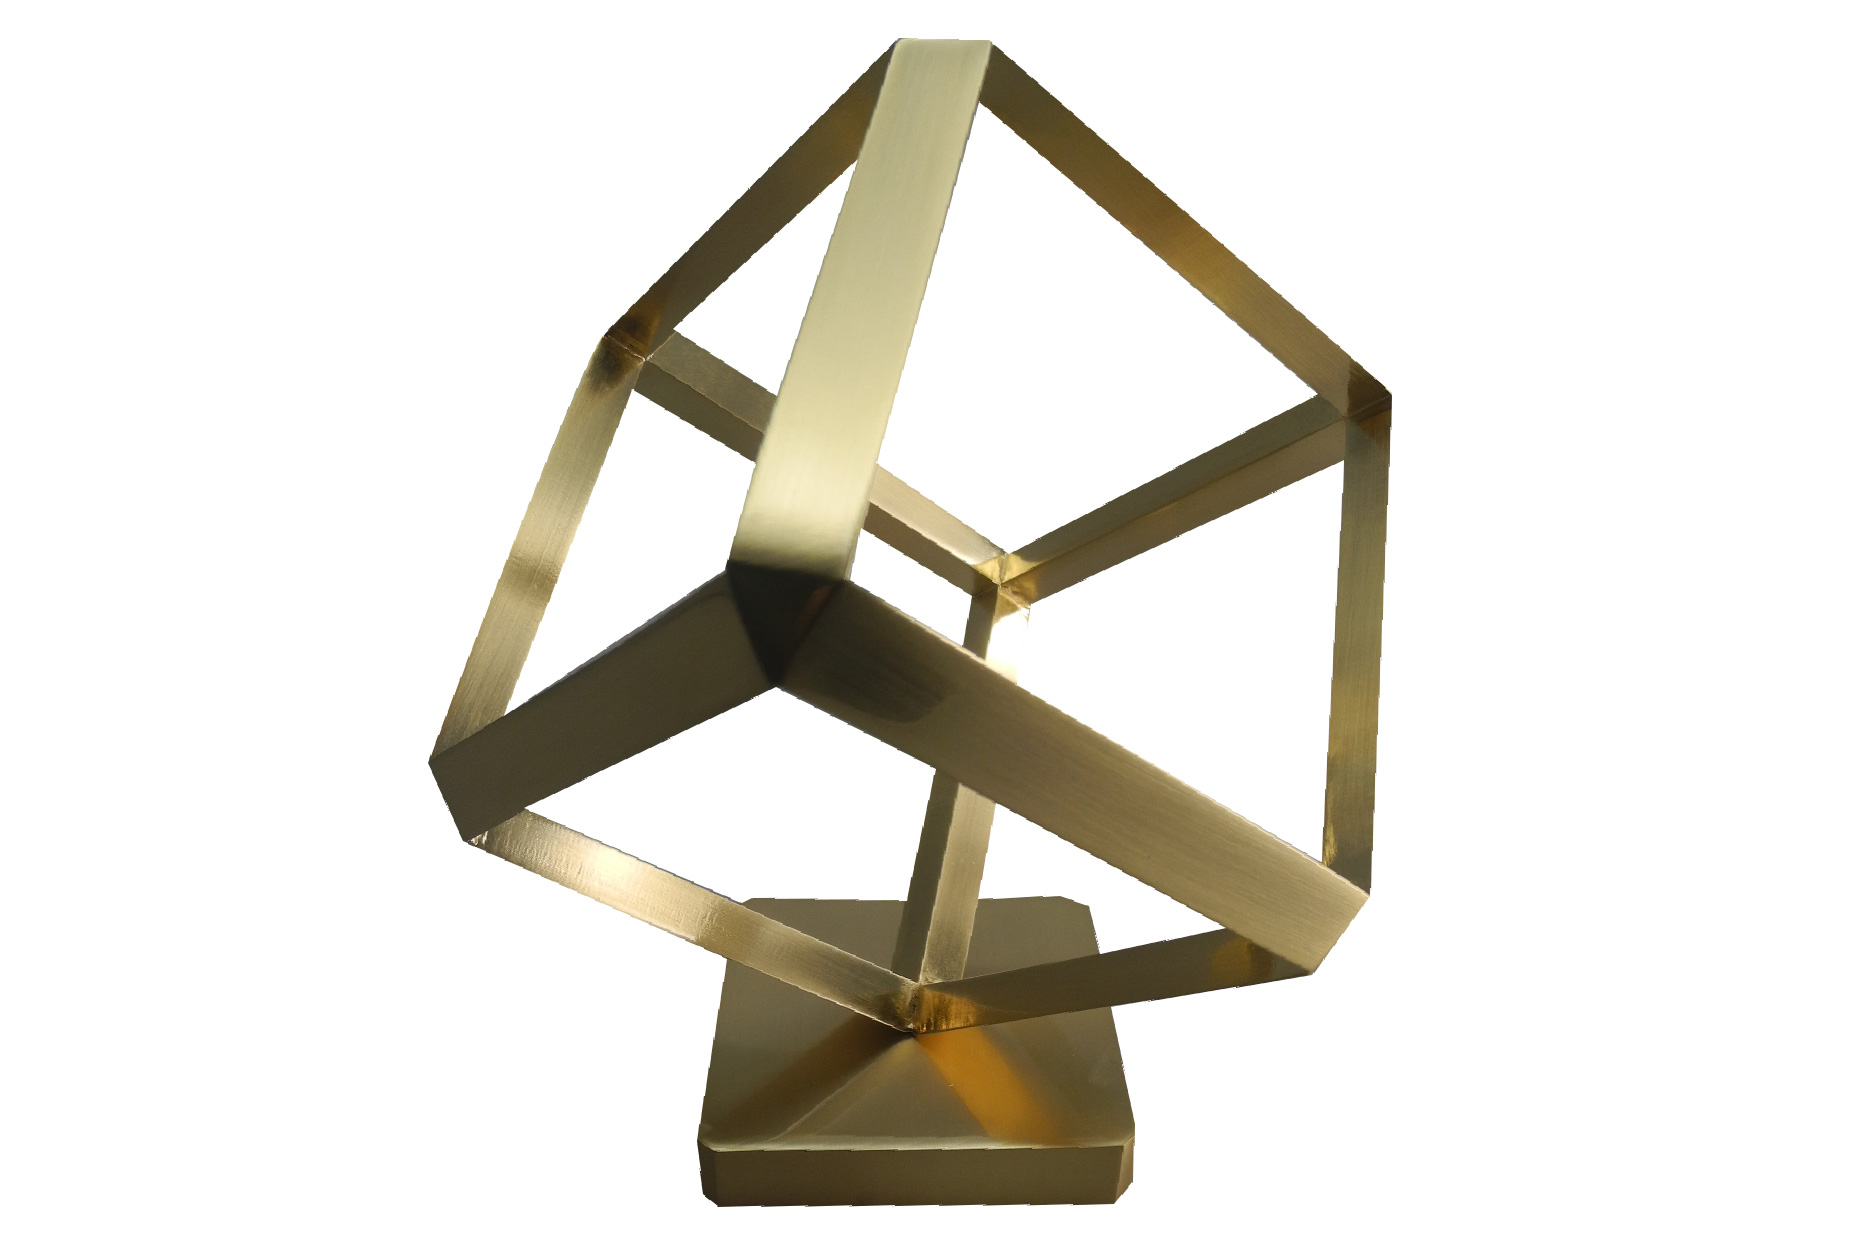 Cube outline award in aluminum.